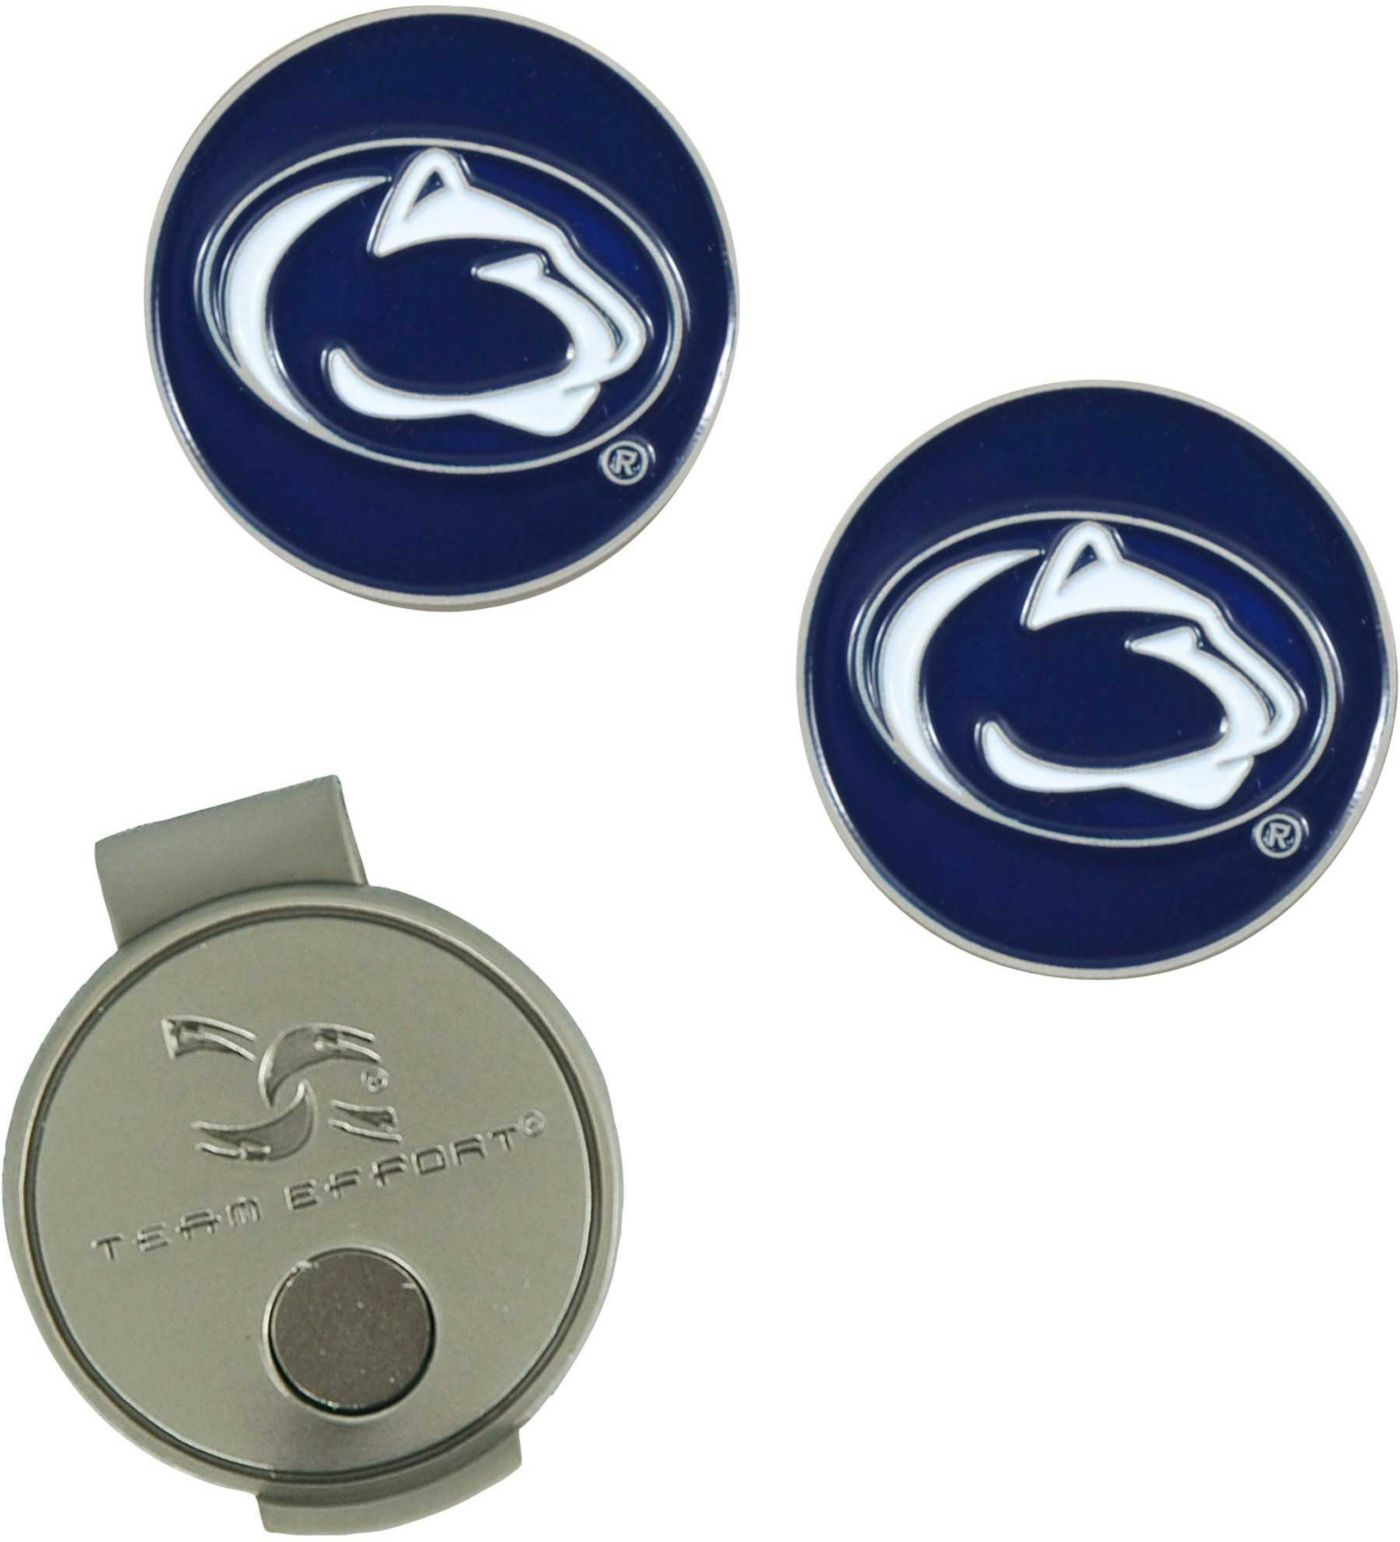 Team Effort Penn State Nittany Lions Hat Clip and Ball Markers Set